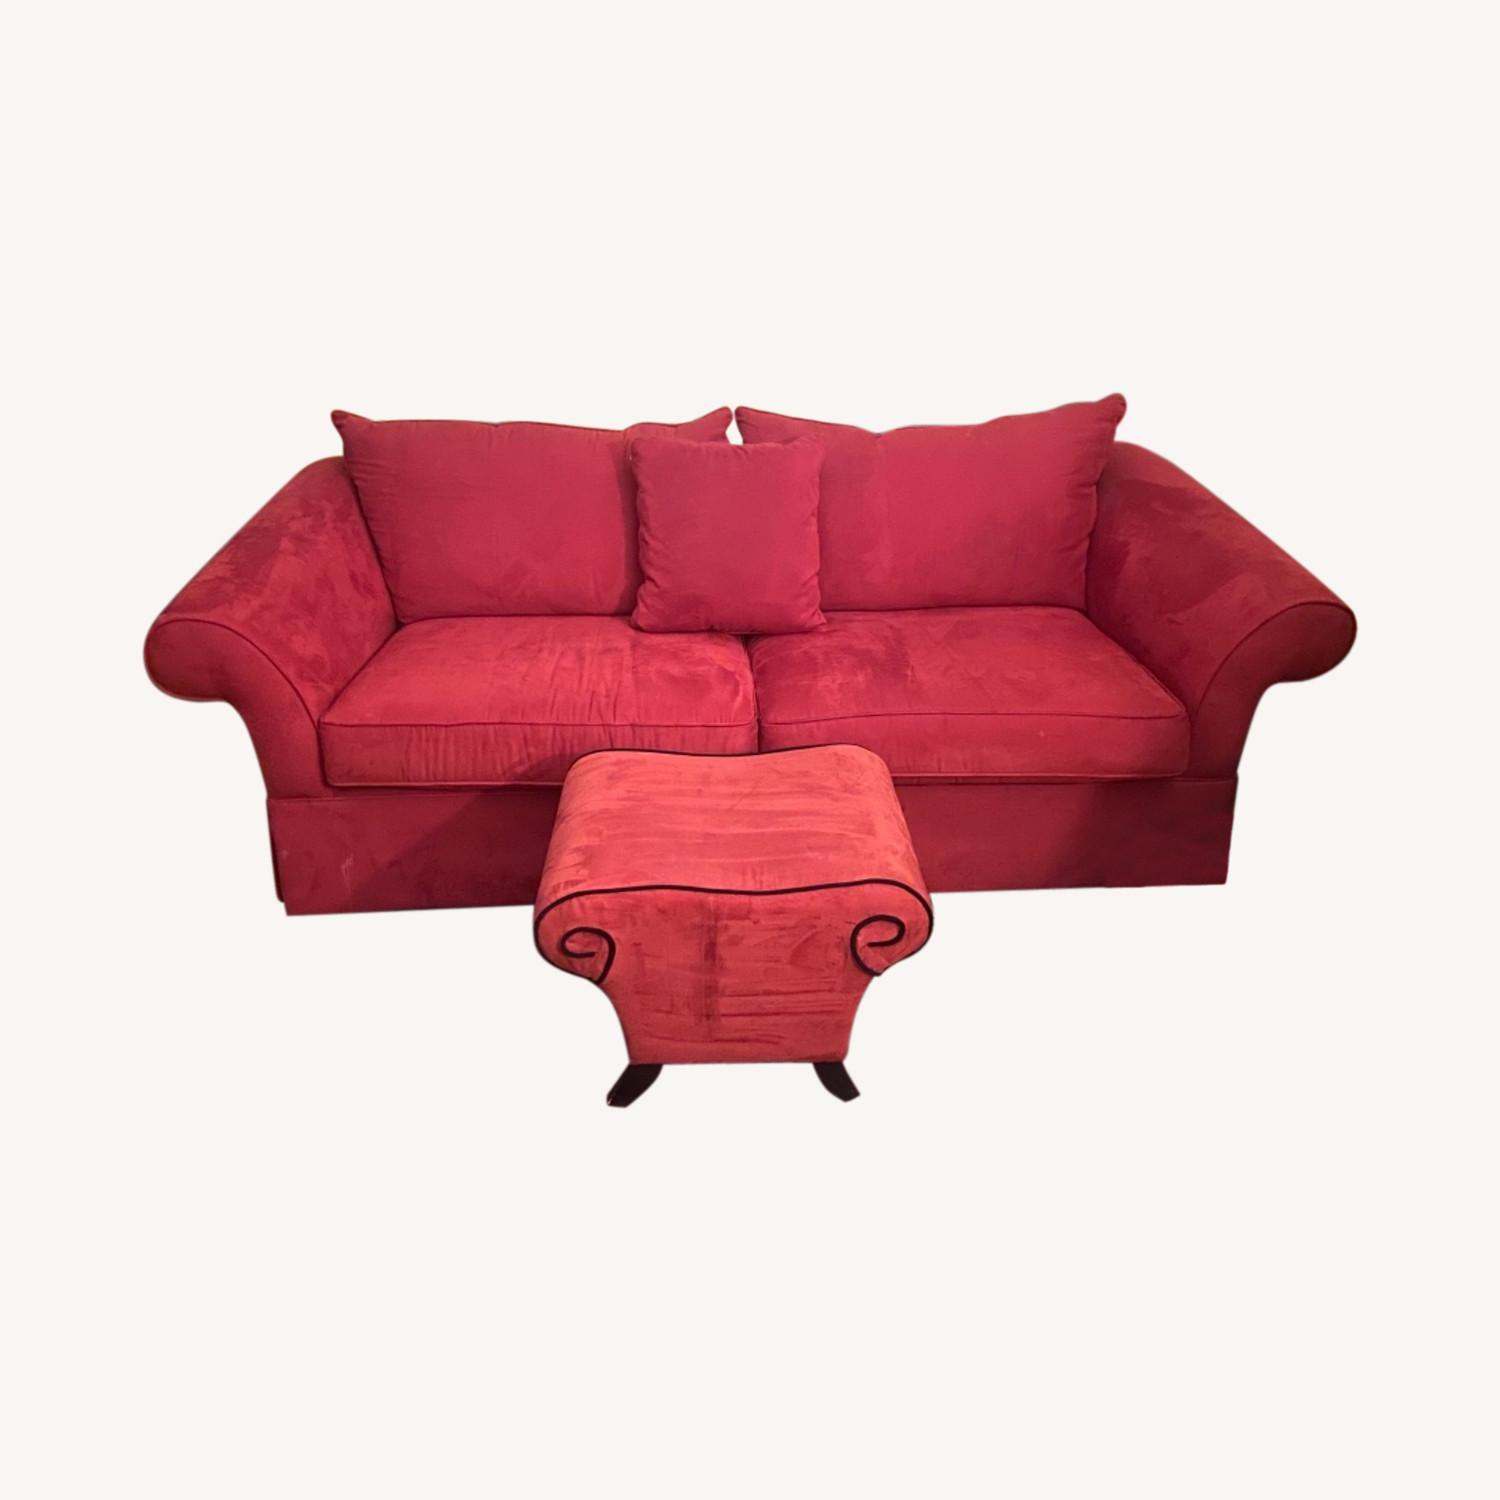 Raymour & Flanigan Red Suede Sofa with Pullout Bed - image-0